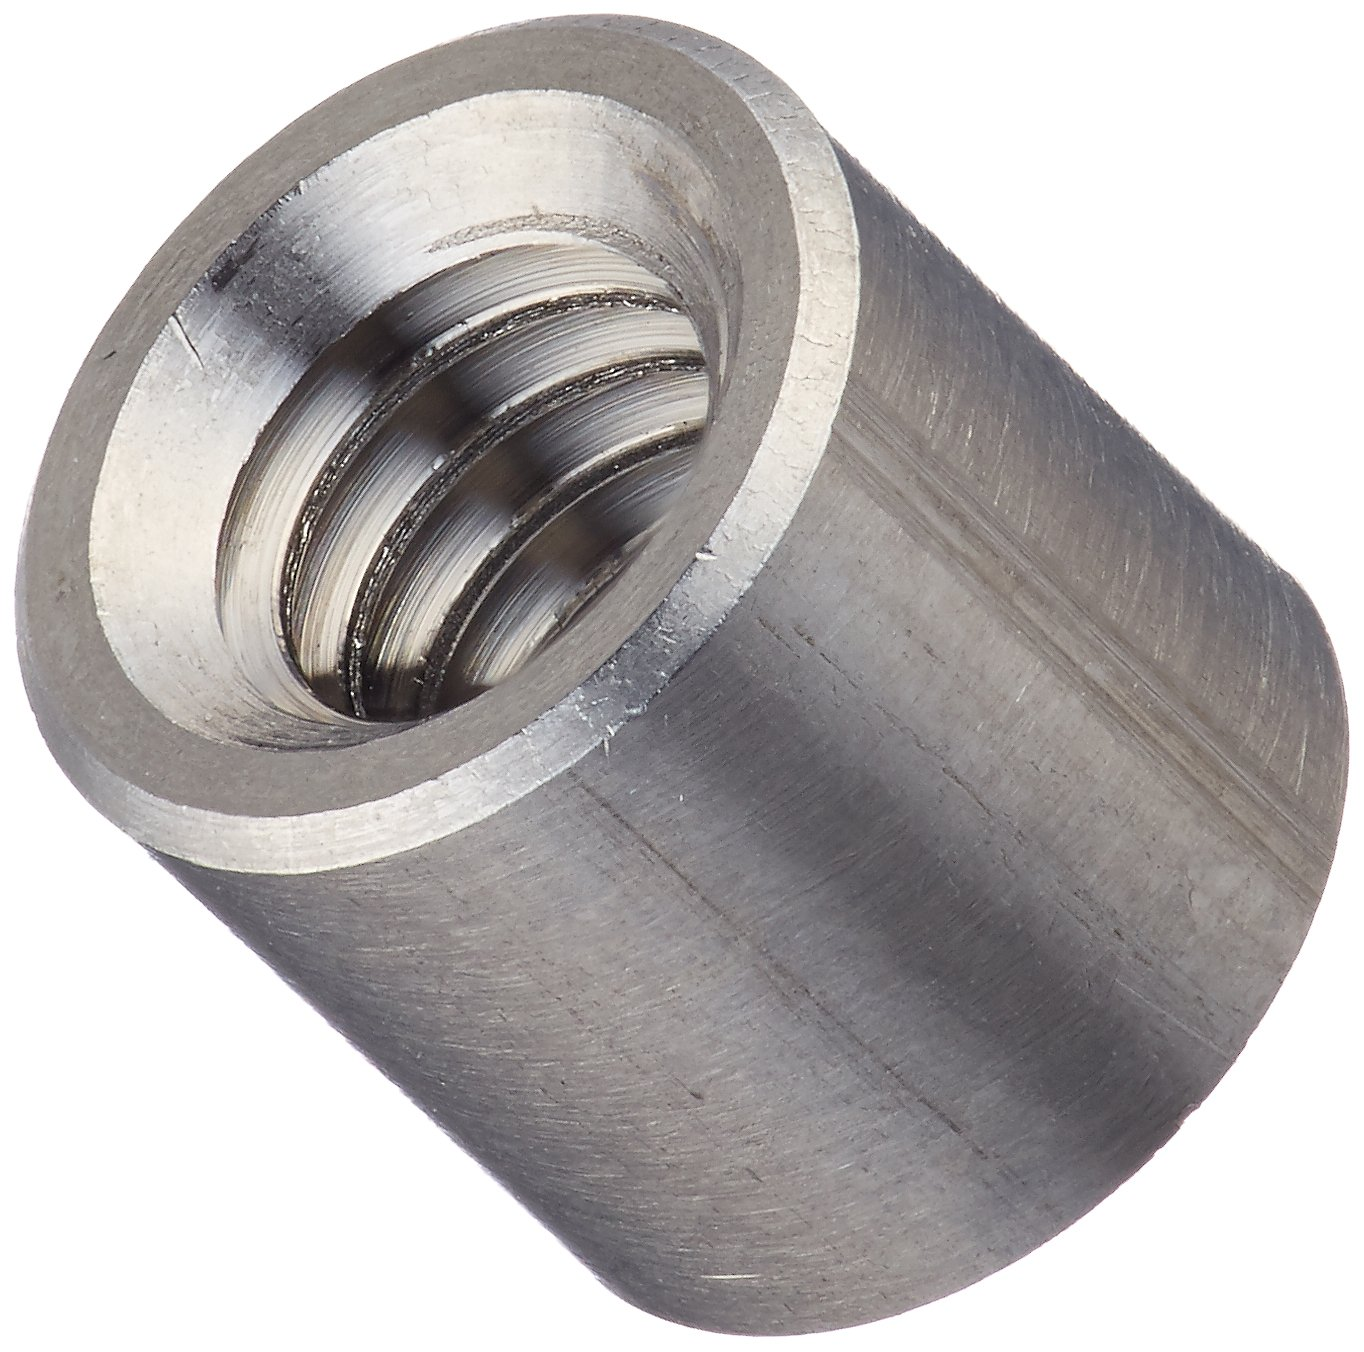 Round Standoff, Stainless Steel, Female, #8-32 Screw Size, 0.25'' OD, 0.25'' Length, (Pack of 10) by Small Parts